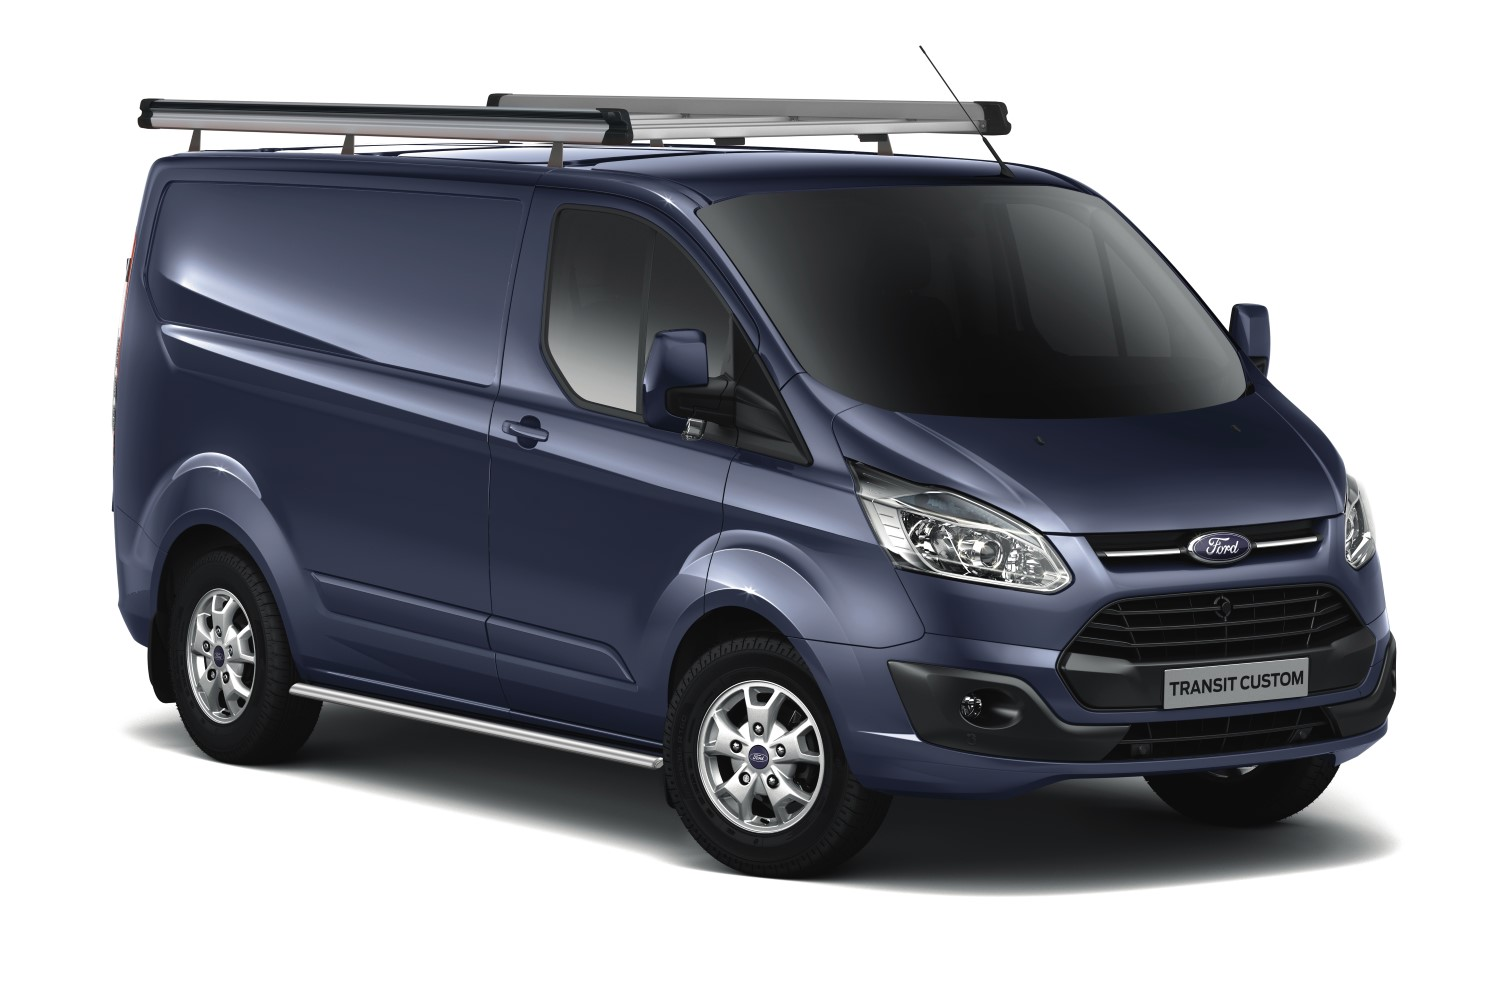 ford transit tourneo custom 2012 schwellerrohre car. Black Bedroom Furniture Sets. Home Design Ideas